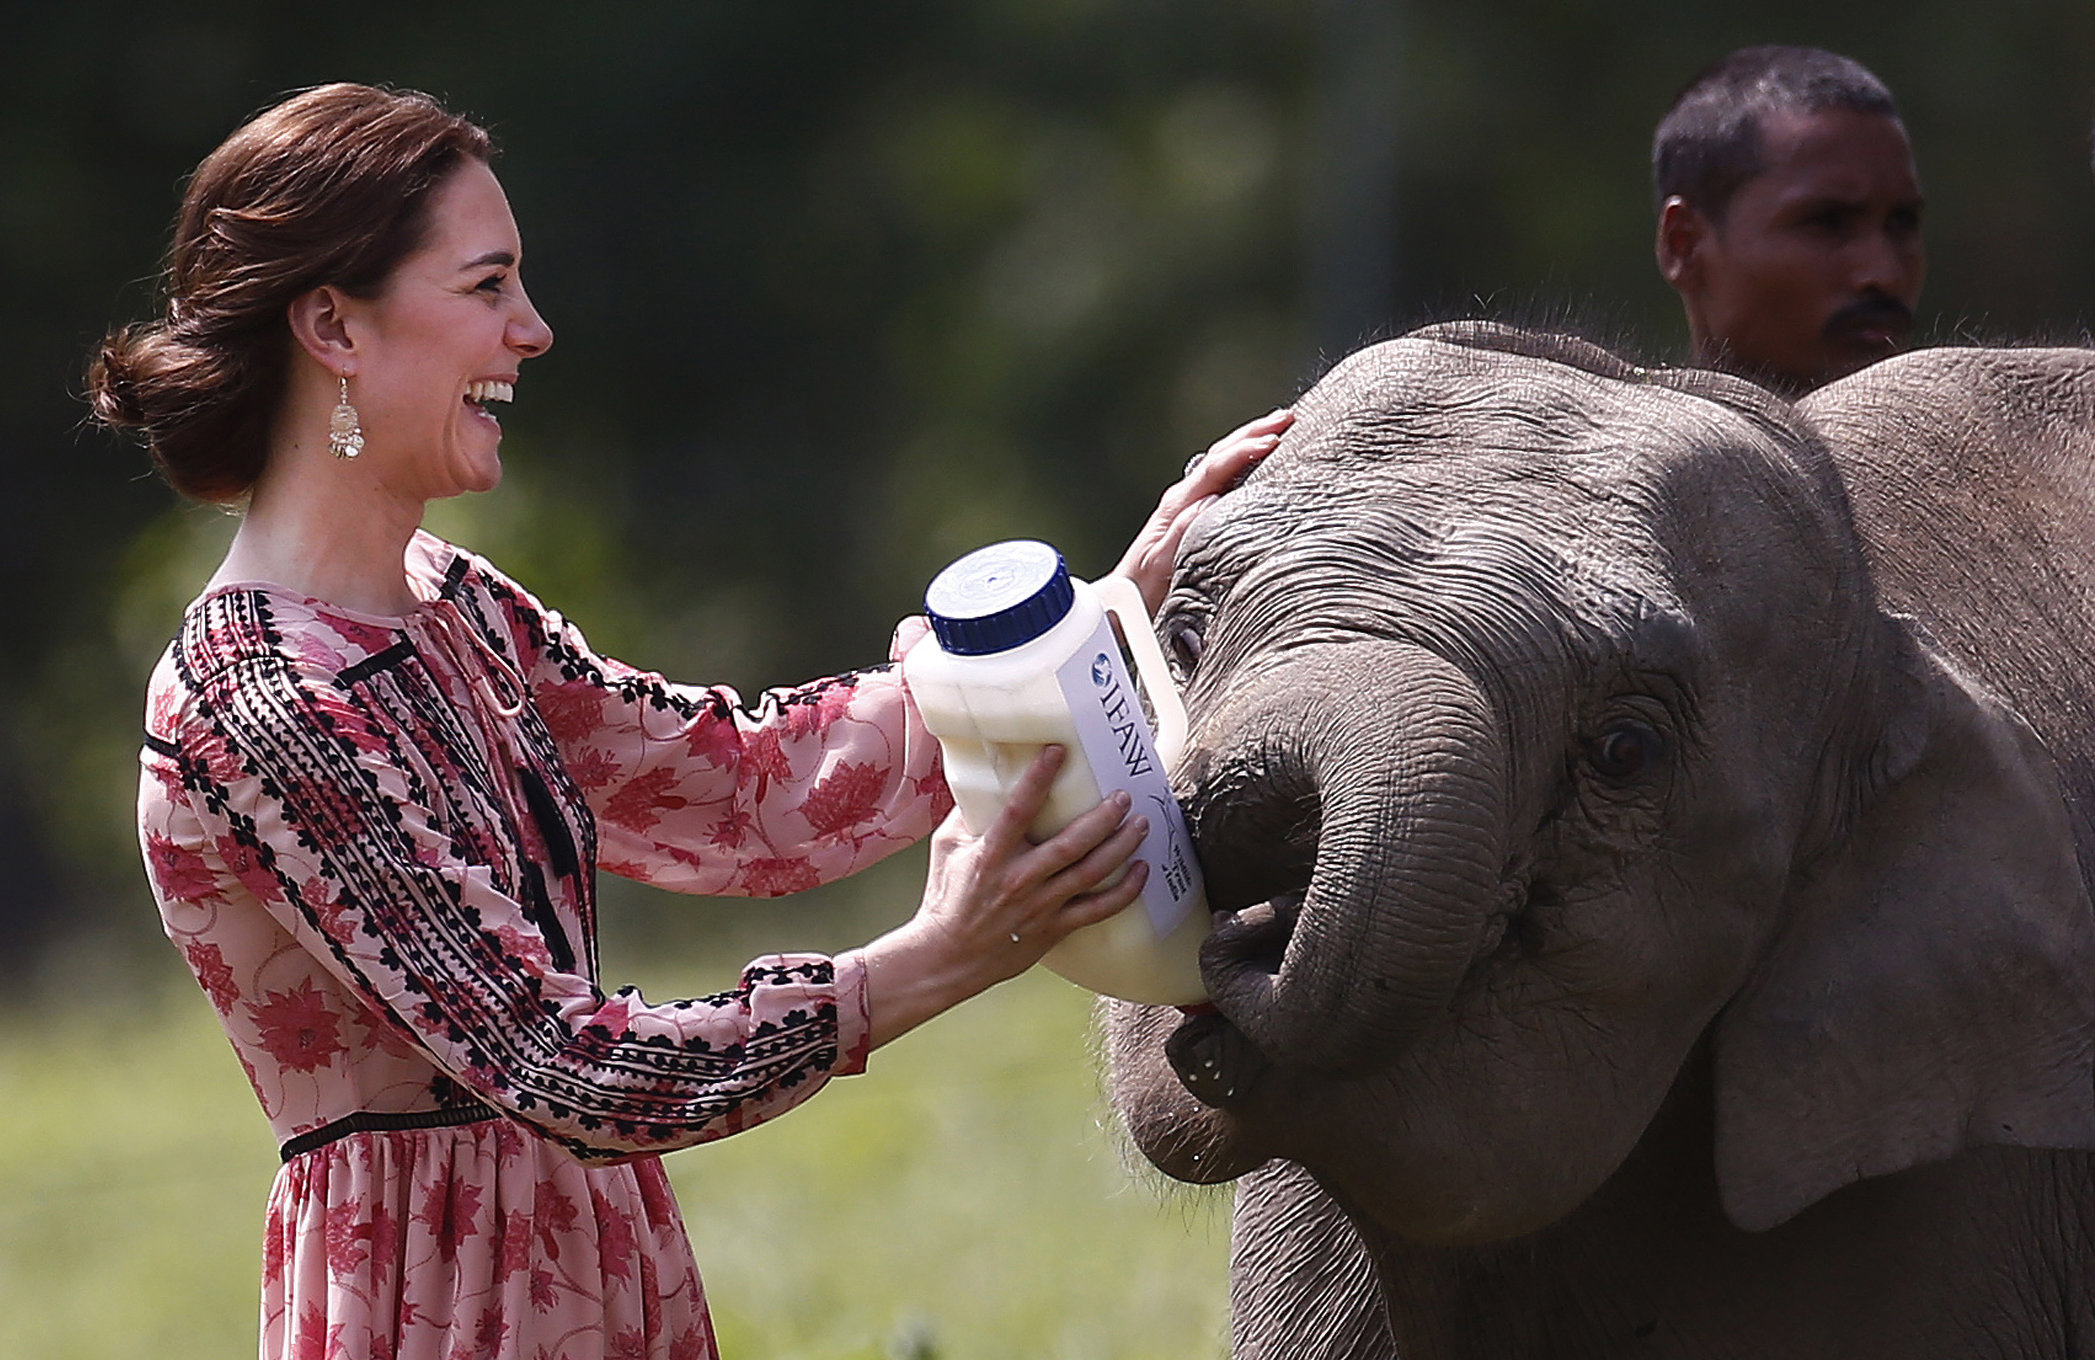 Kate, Duchess of Cambridge, feeds a baby elephant at the Centre for Wildlife Rehabilitation and Conservation at Panbari reserve forest in Kaziranga, in the north-eastern state of Assam, India on April 13, 2016.